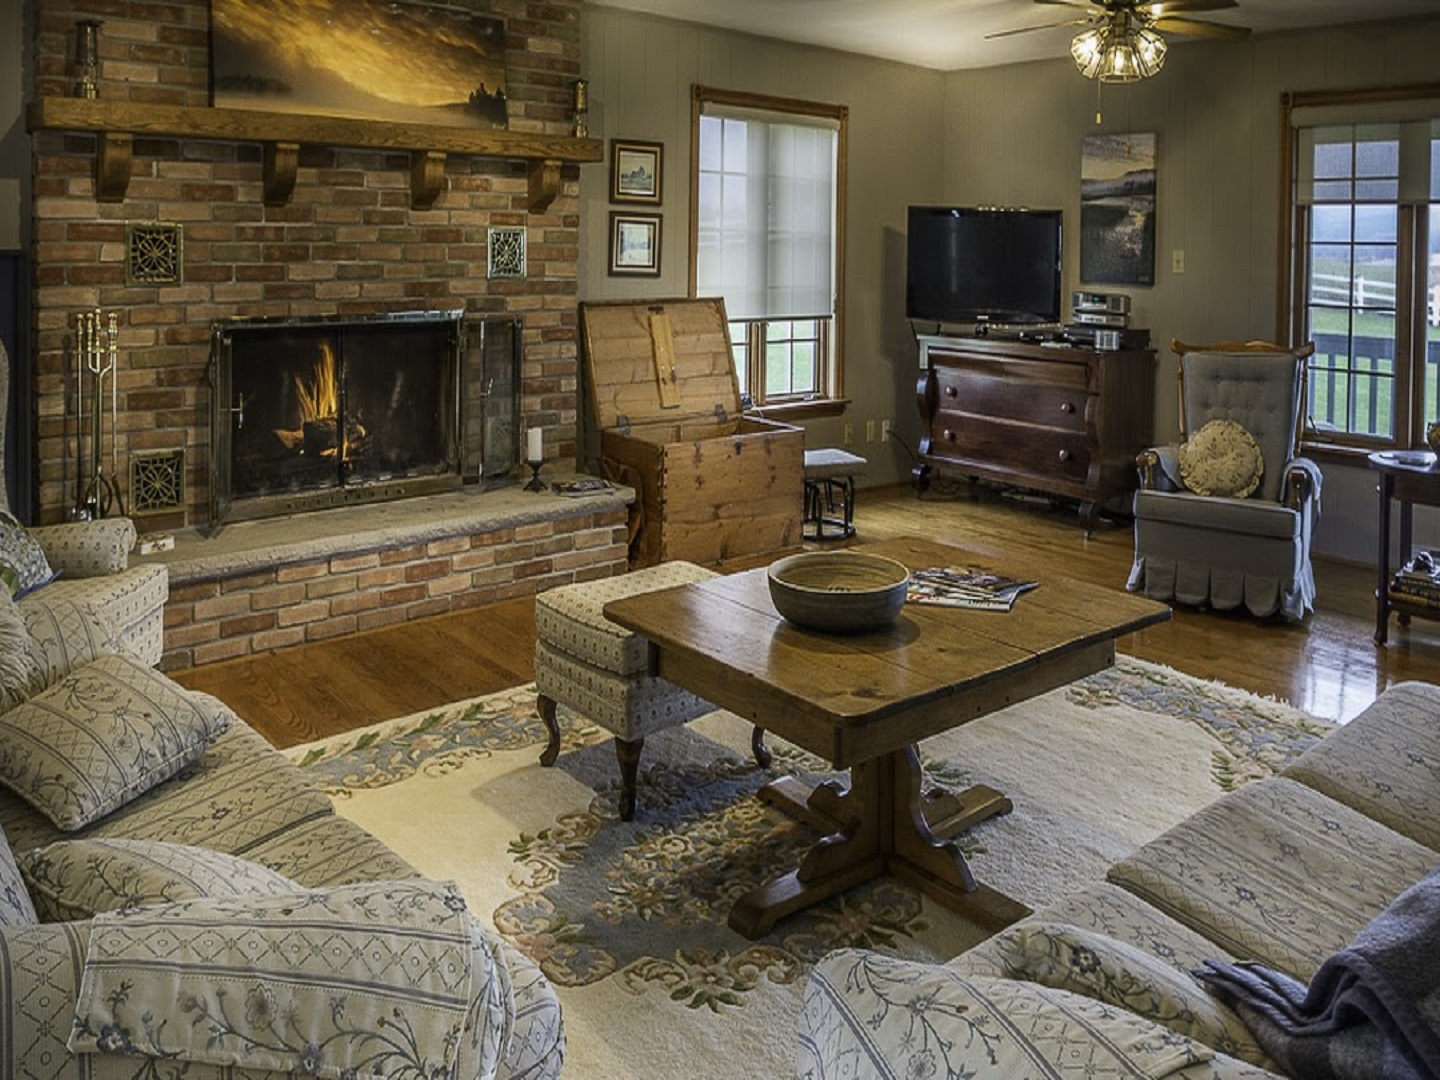 A living room filled with furniture and a fire place at Mountain Ash Farm Hospitality .